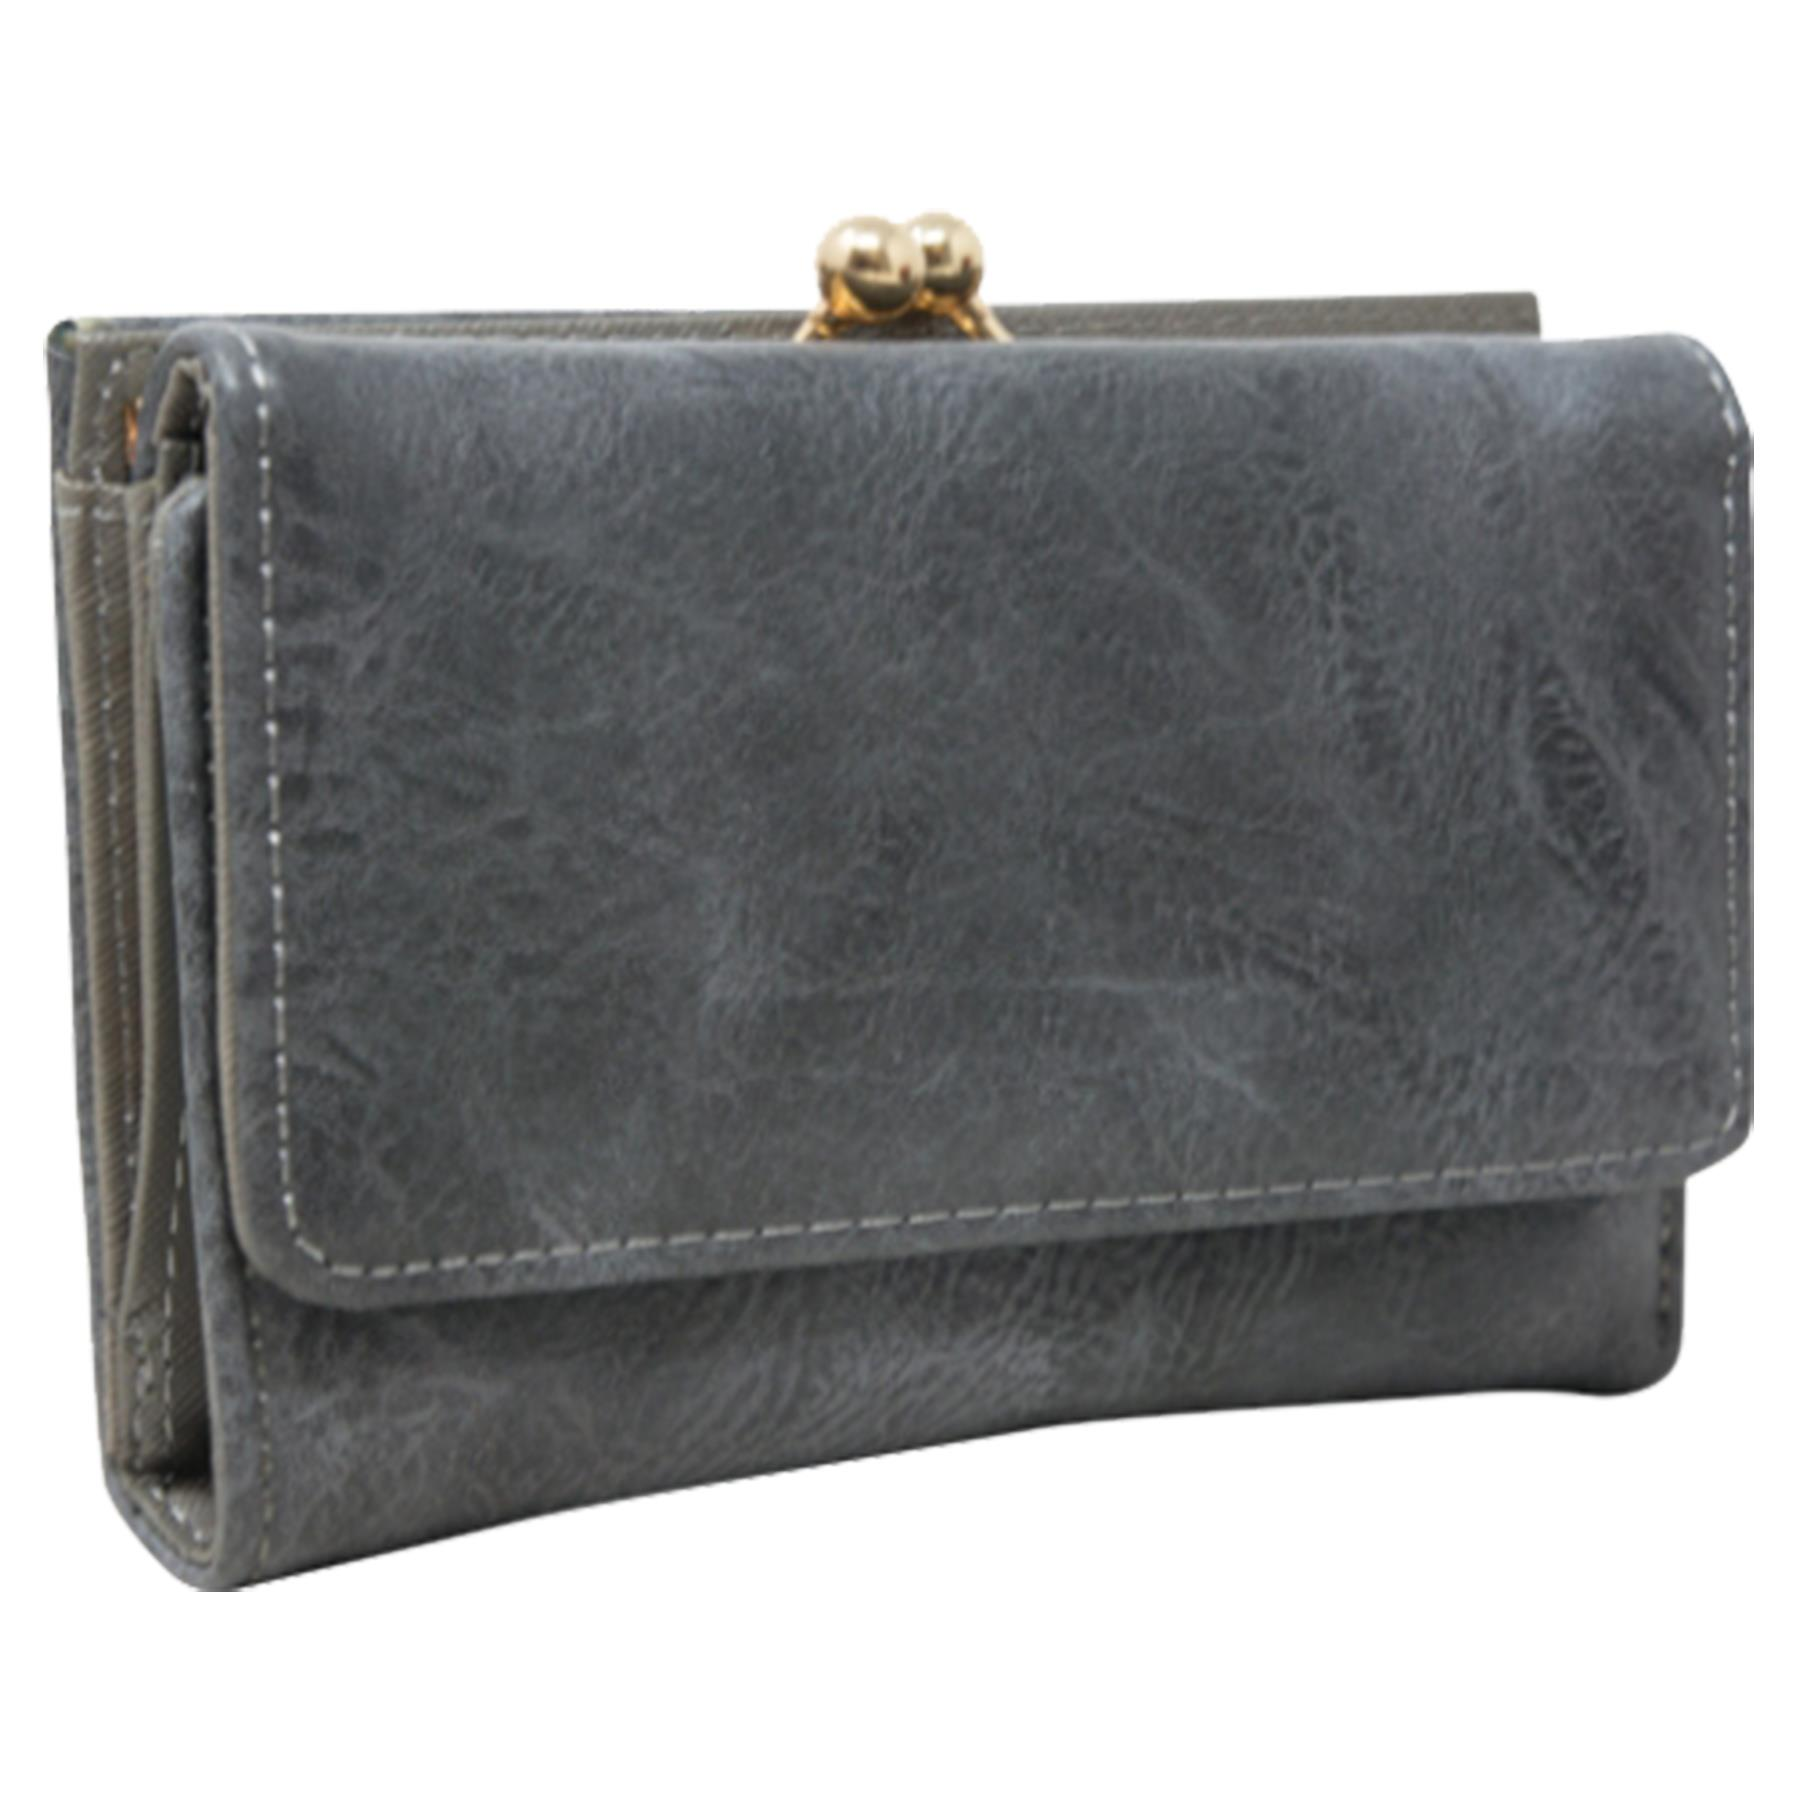 New-Synthetic-Leather-Kiss-Lock-Compartment-Ladies-Casual-Wallet-Purse thumbnail 15